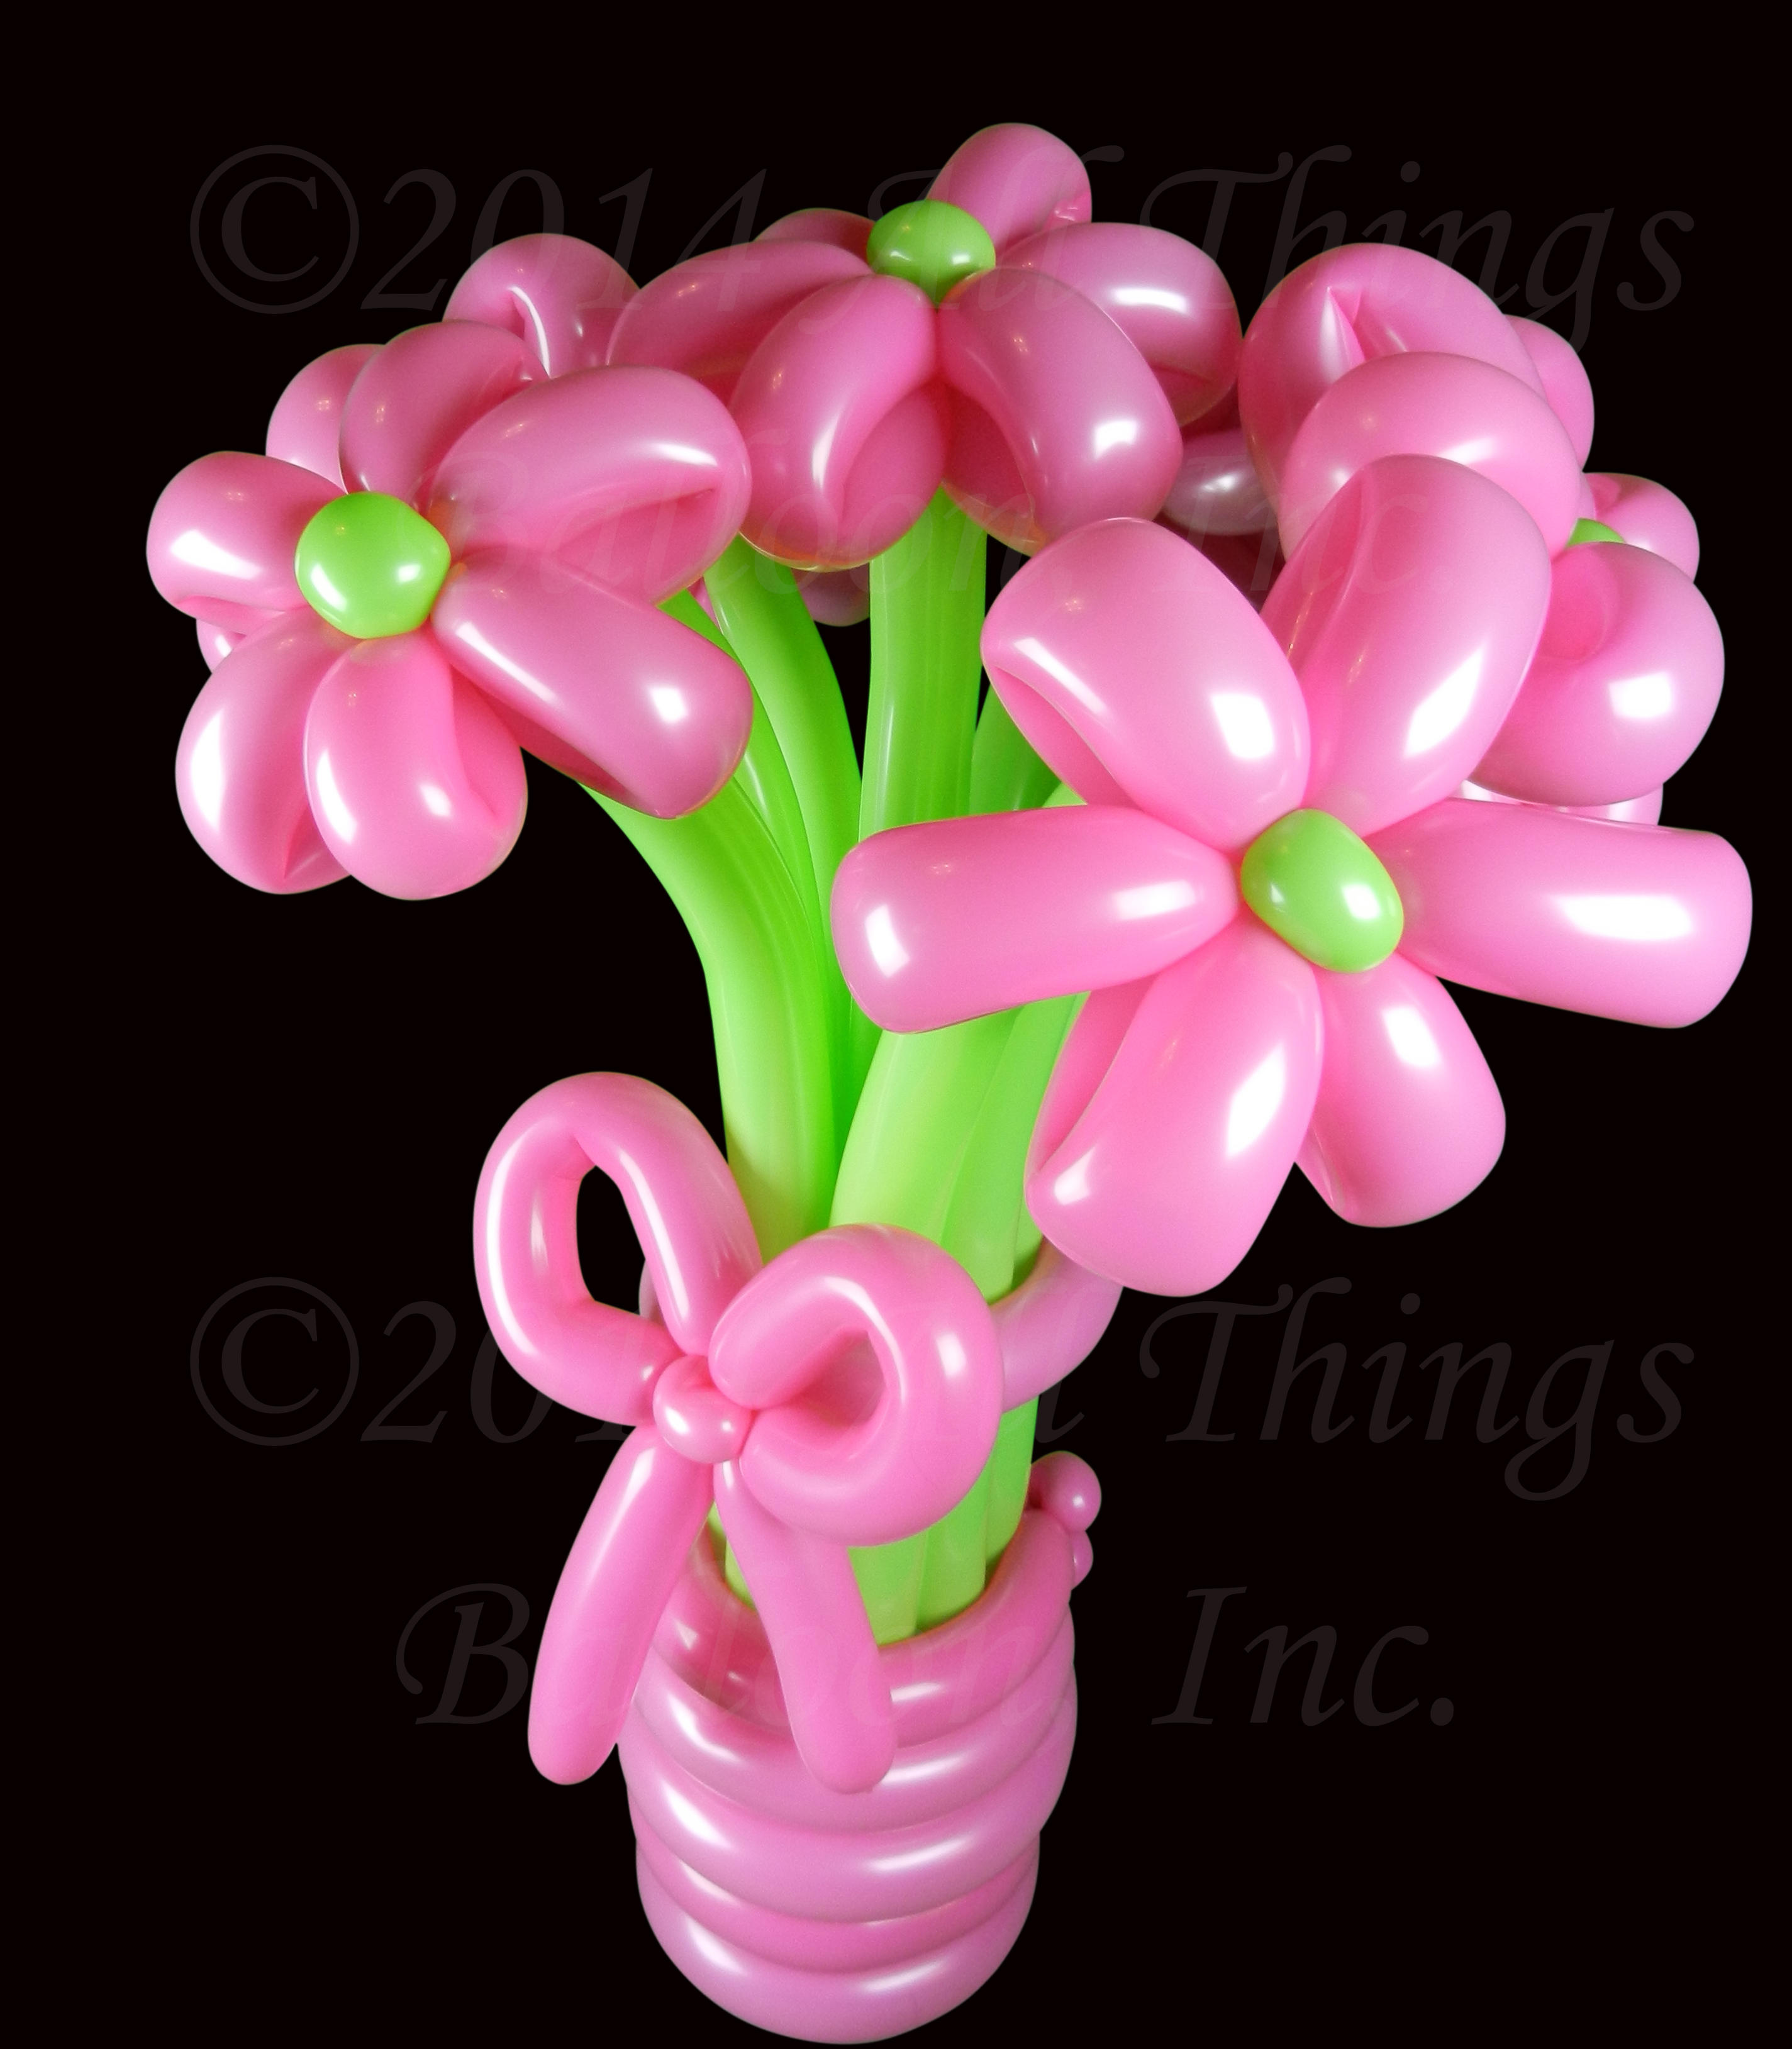 : balloon flower decoration ideas - www.pureclipart.com